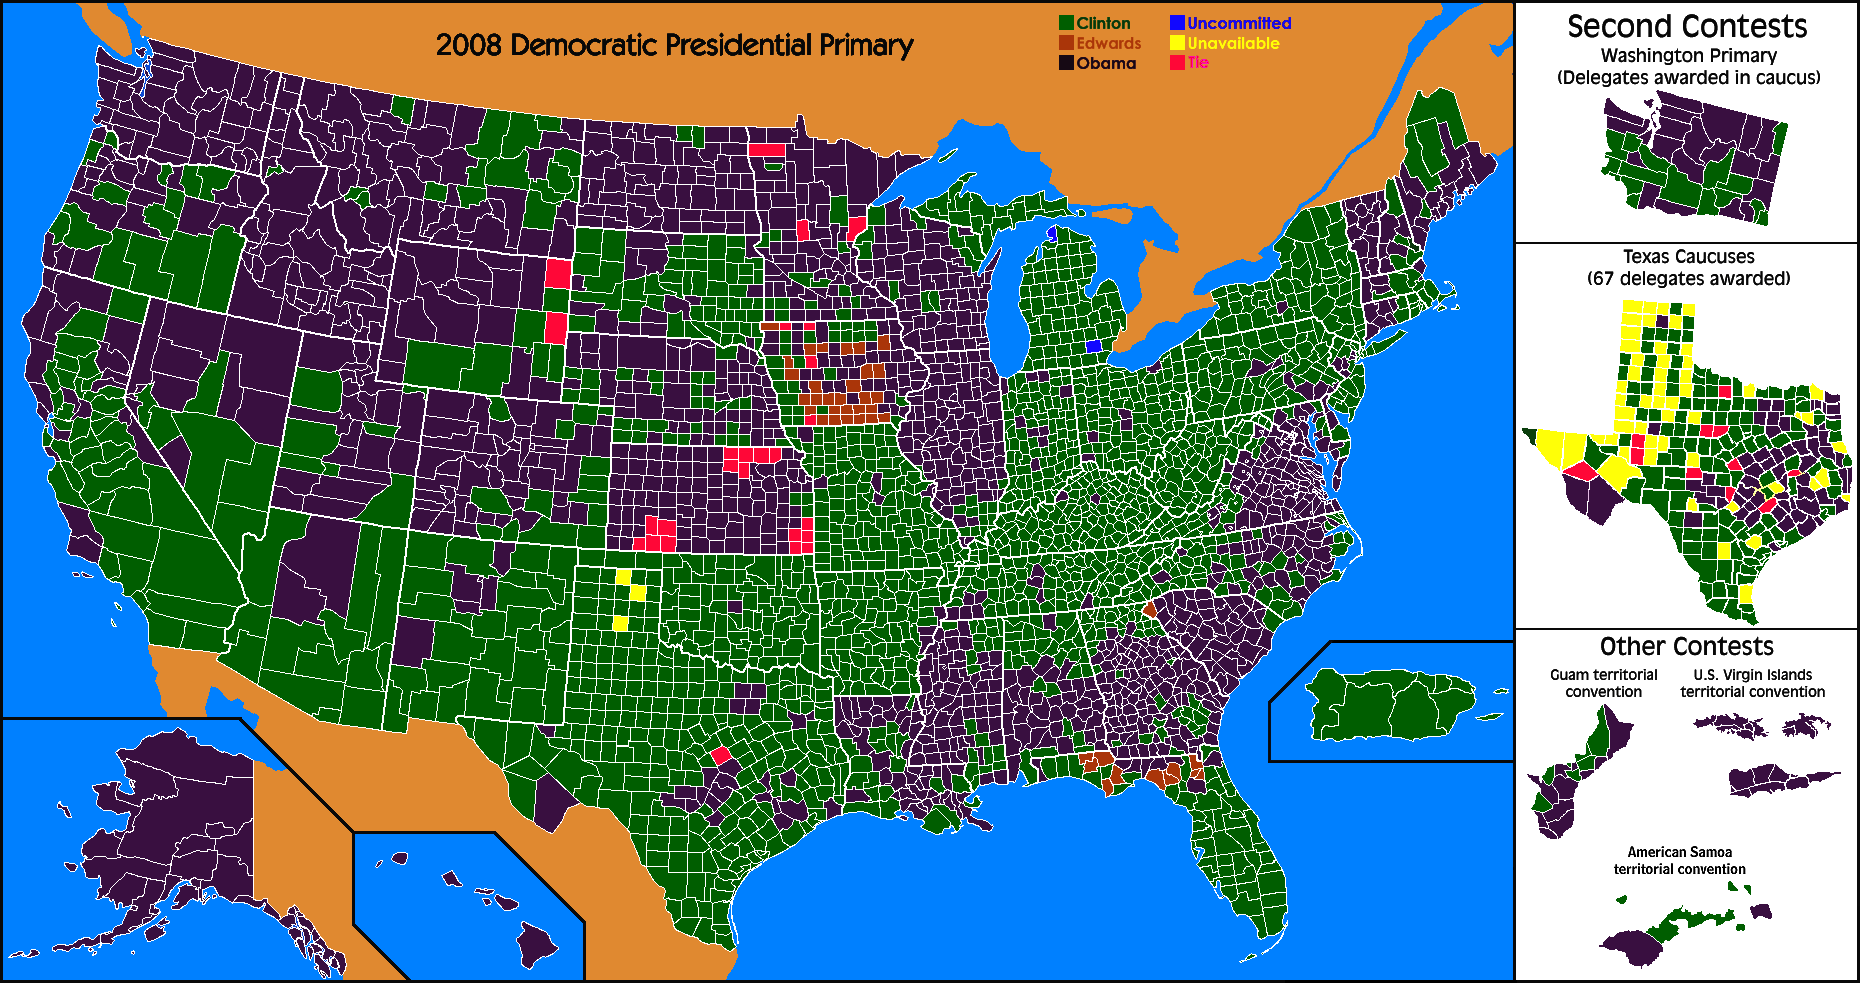 FileResults by county of the 2008 Democratic Presidential Primaries